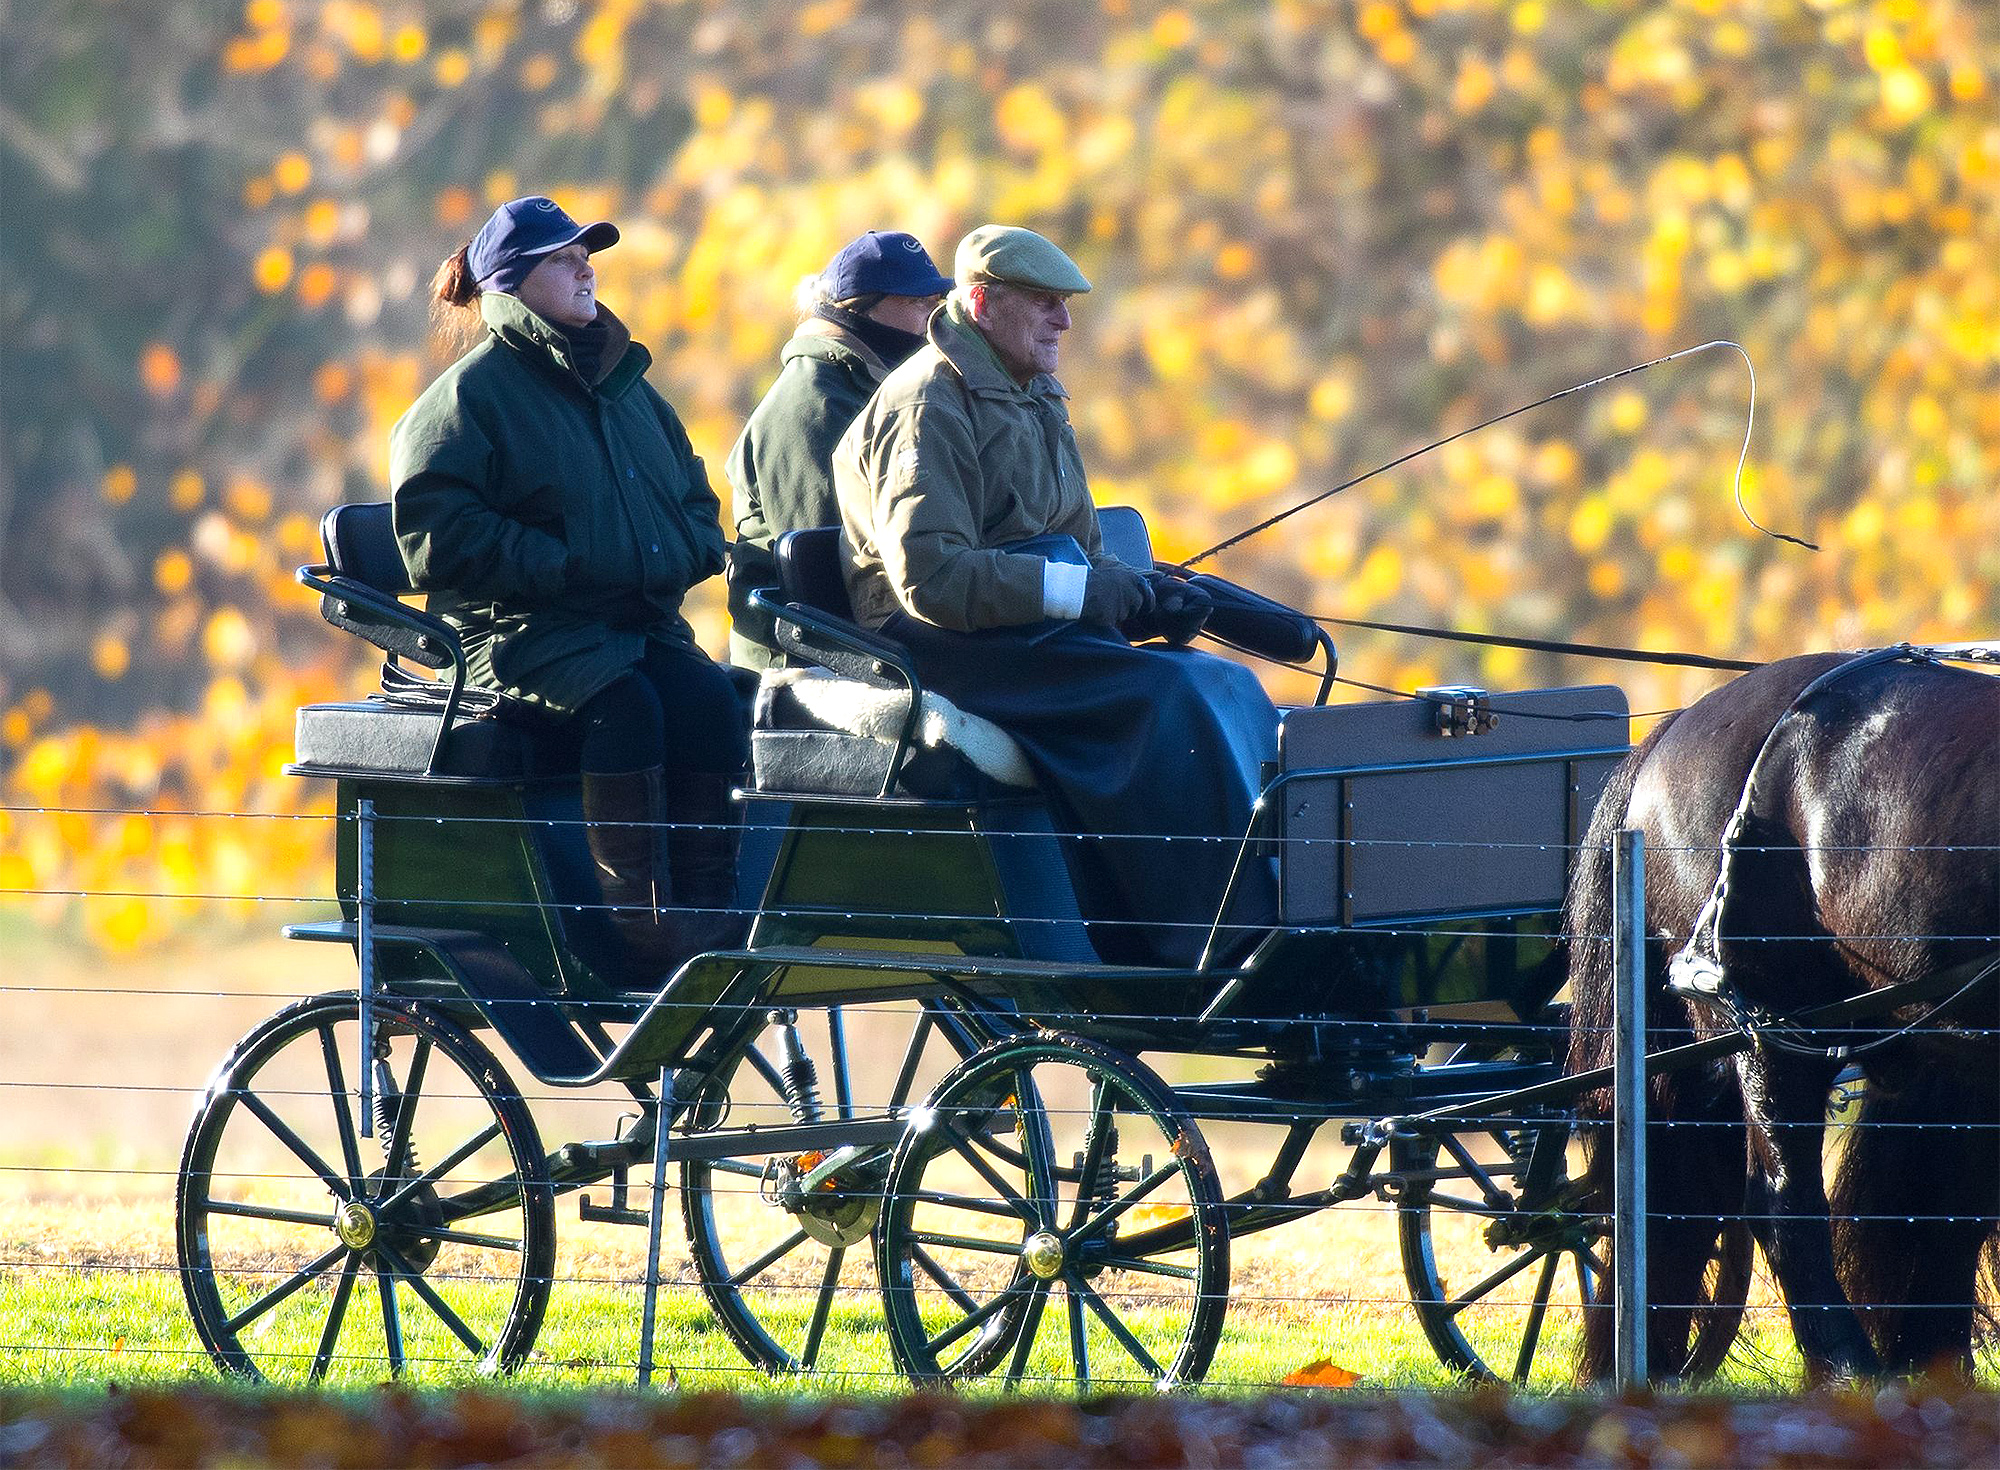 Prince Philip carriage driving, Windsor, UK - 12 Nov 2018